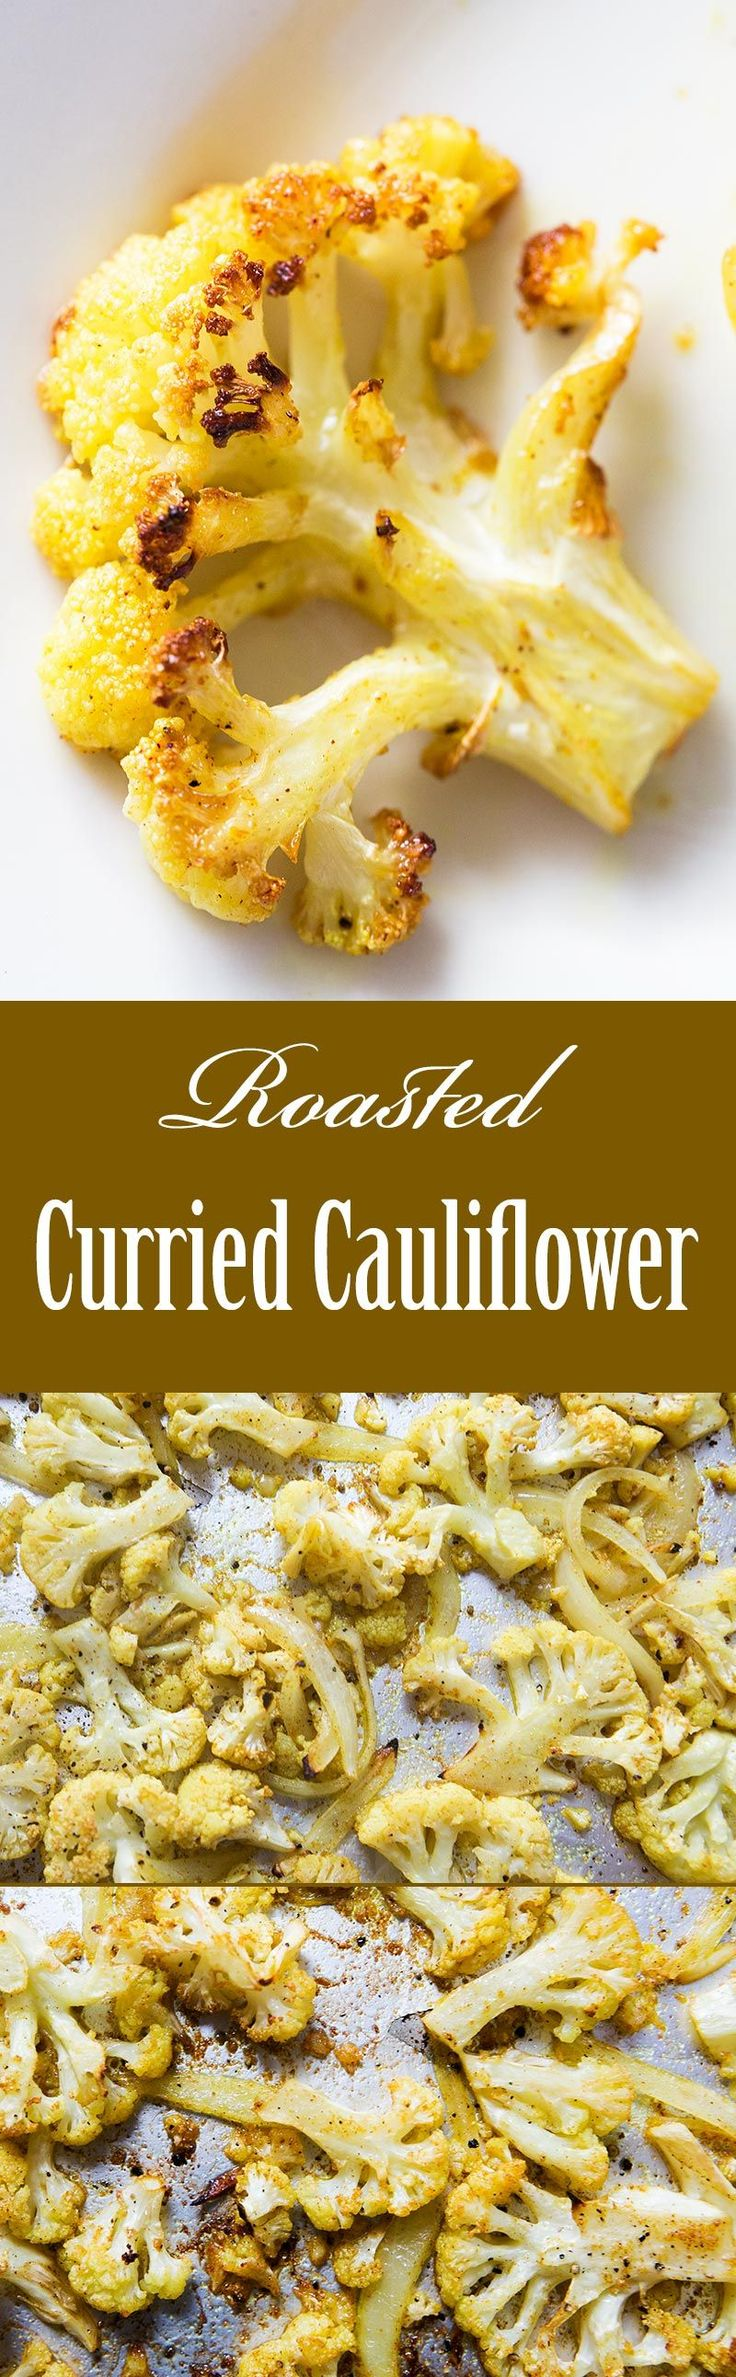 The only thing better than roasted cauliflower? Curry Roasted Cauliflower! The toasted browned bits are the best. You won't want to share! #healthy #paleo #glutenfree #lowcarb #vegan On SimplyRecipes.com